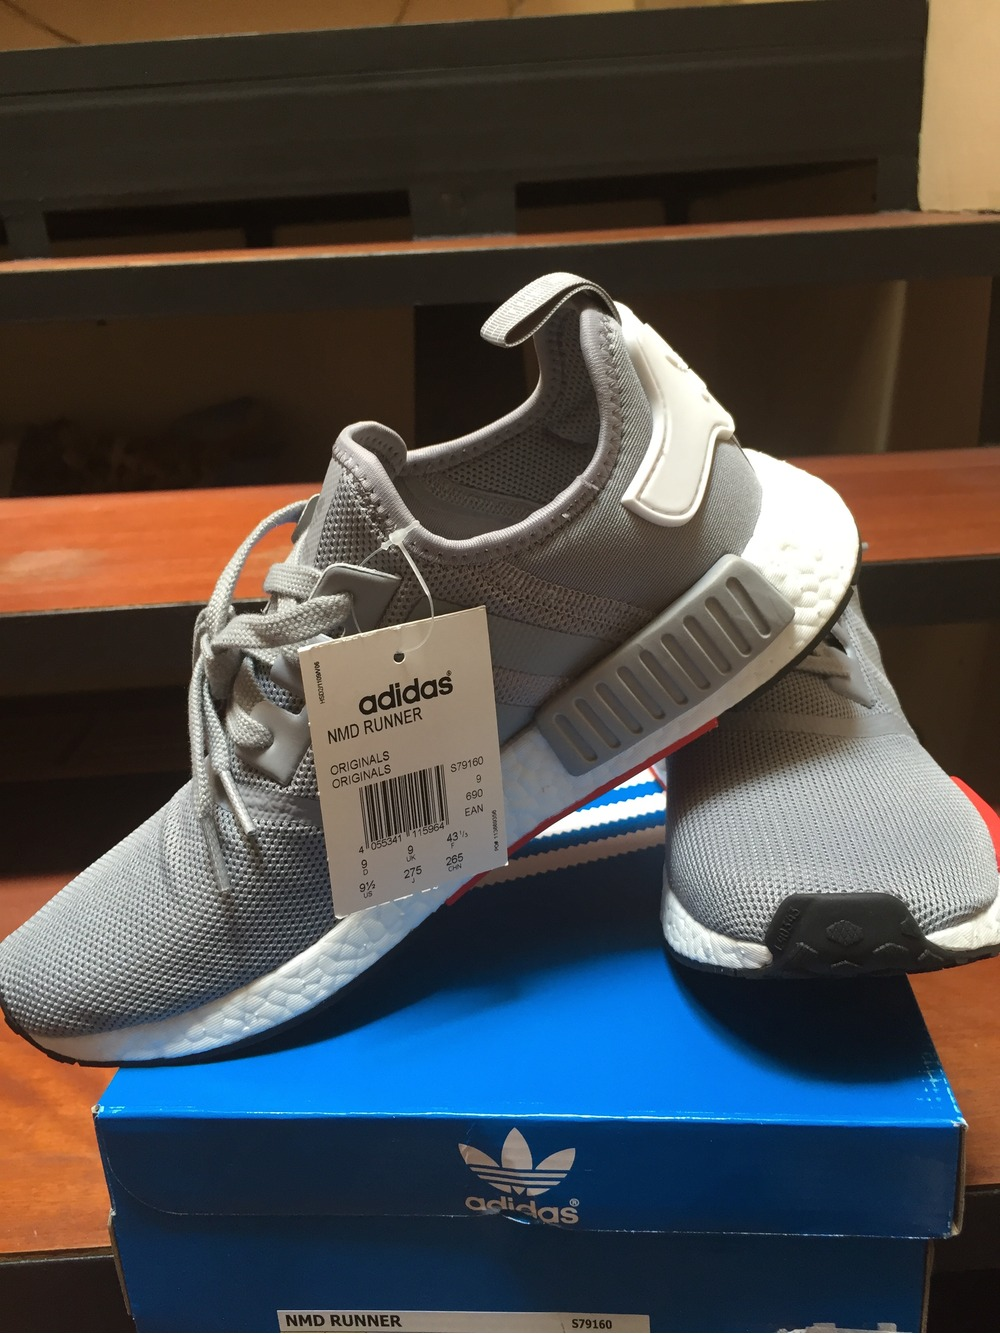 Adidas Nmd Runner Moscow